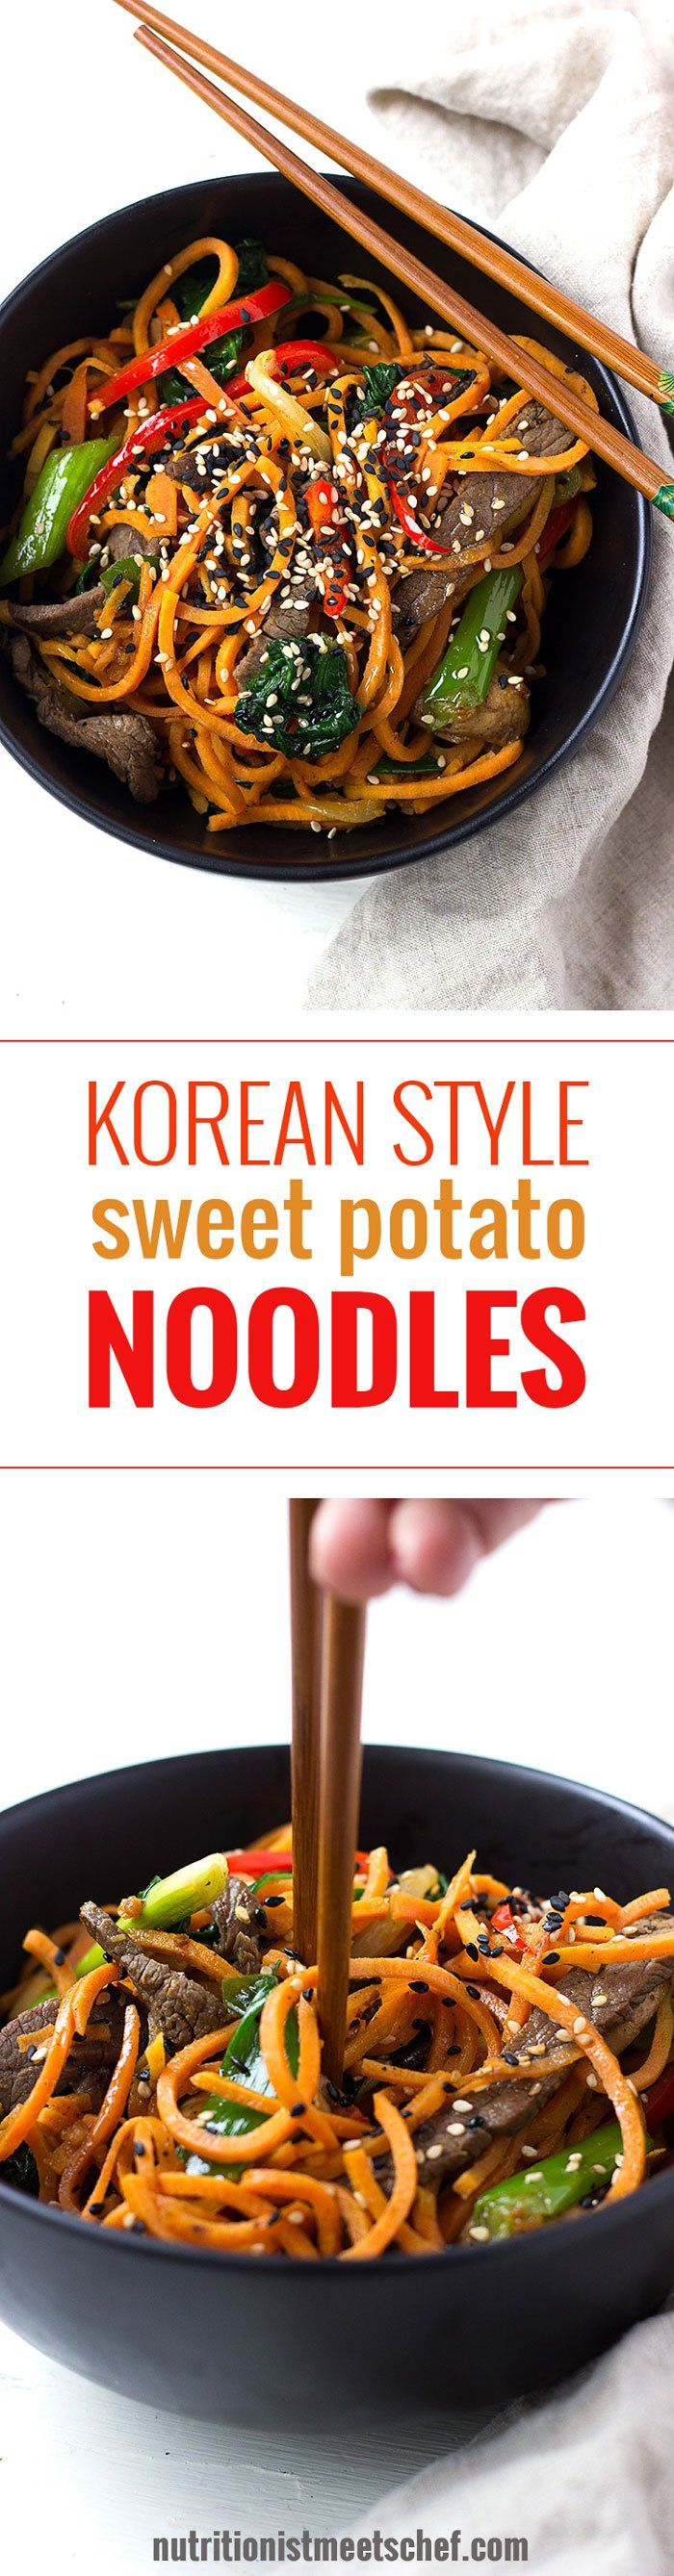 This Korean Style Sweet Potato Noodles is inspired by the popular korean dish Japchae, but has spiralised sweet potatoes instead of glass noodles! See more at nutritionistmeetschef.com